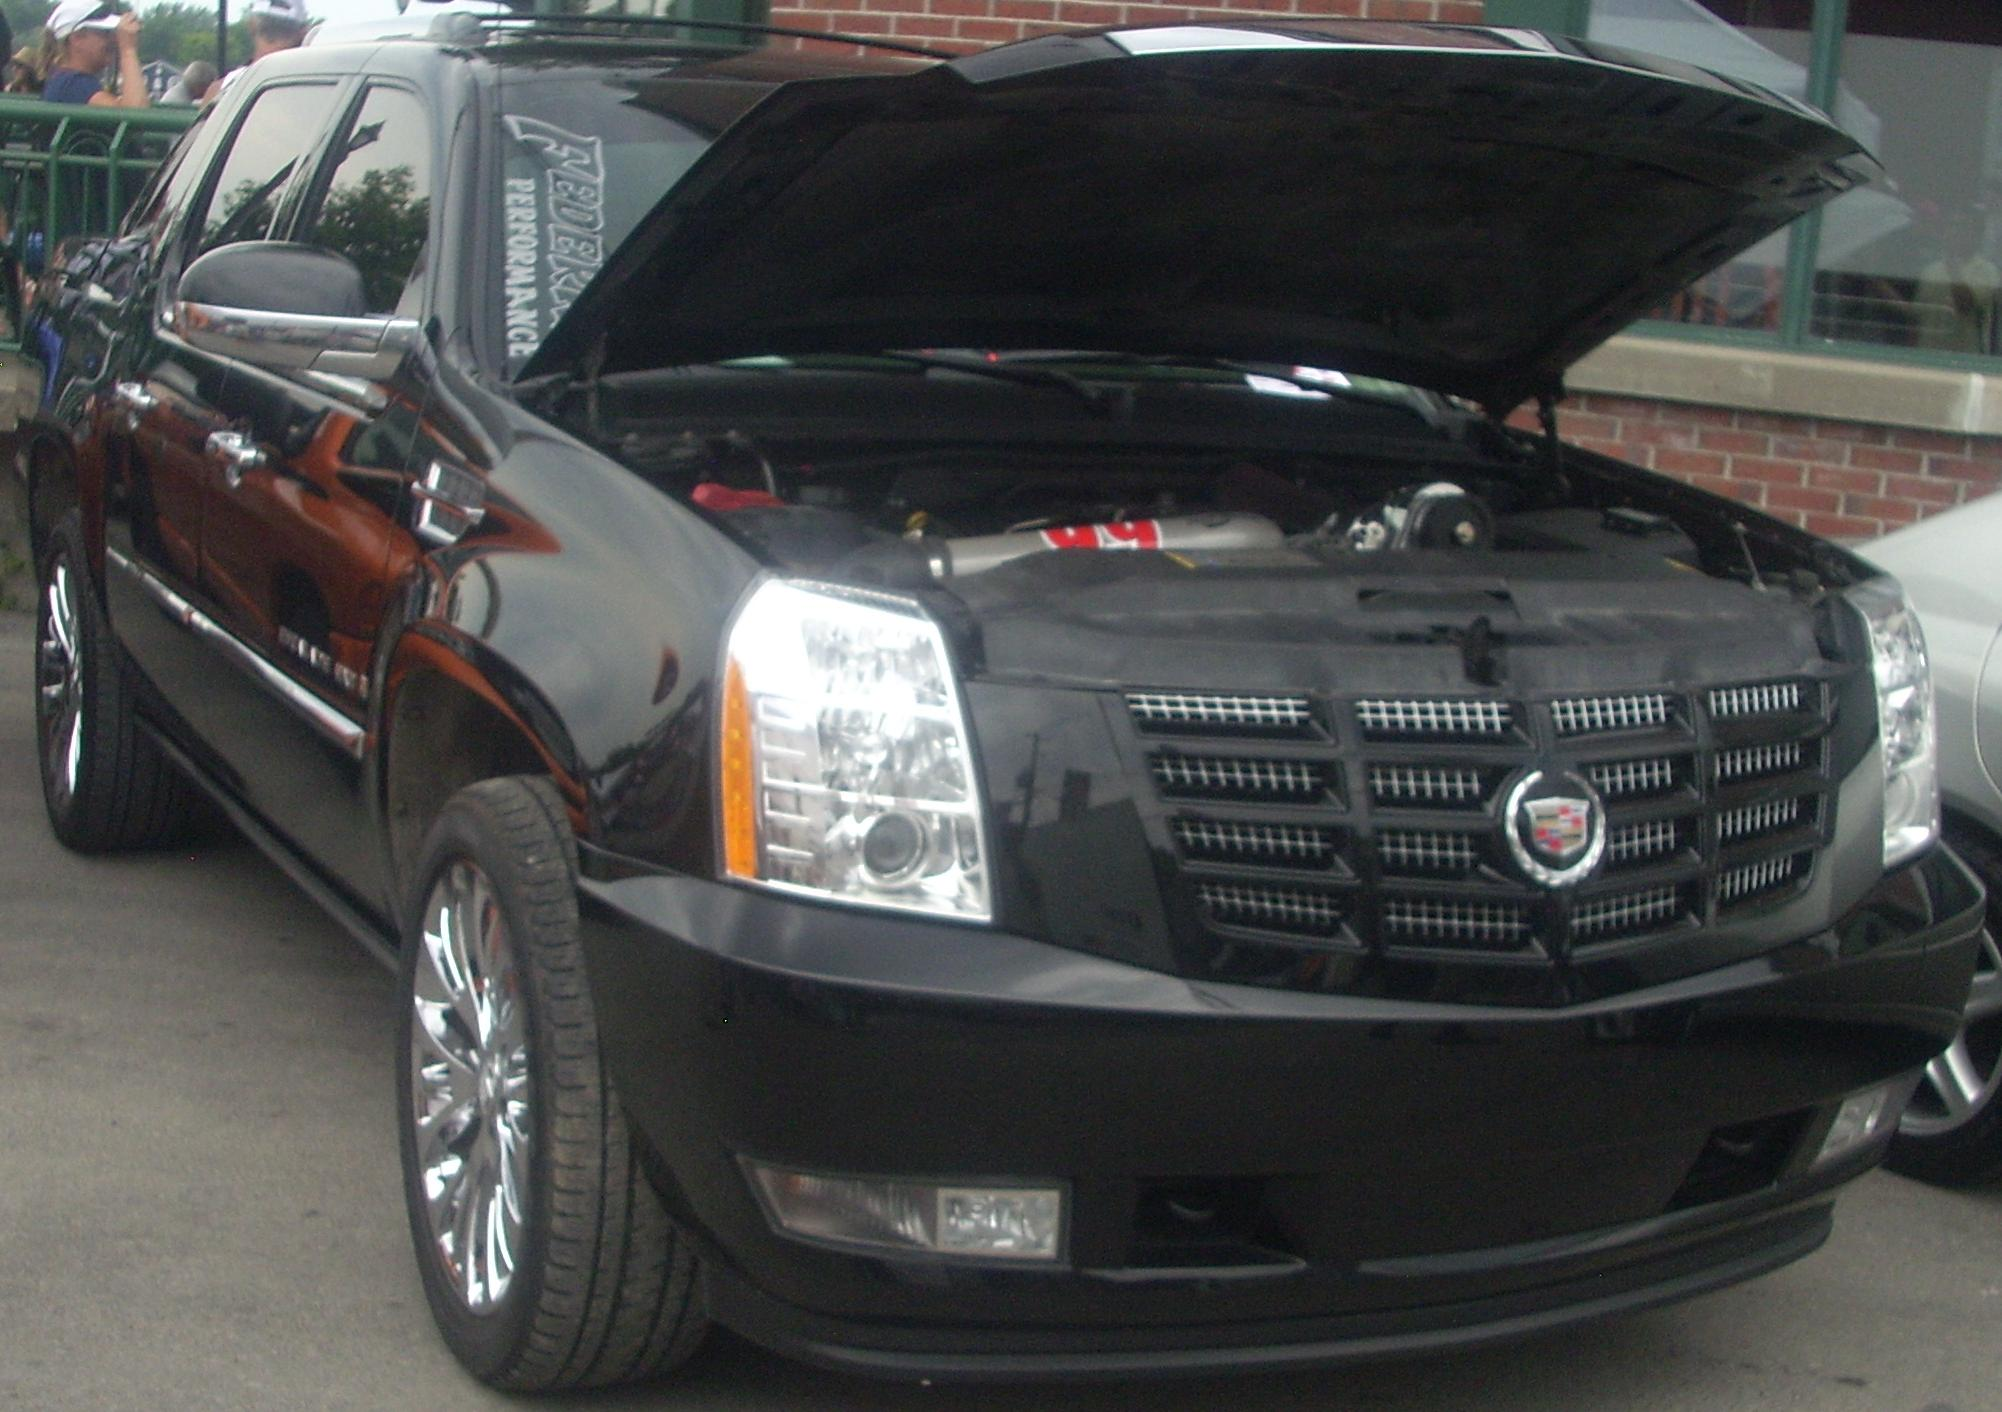 awd escalade tx veh cab estimator payment loan ext lubbock in crew sb cadillac